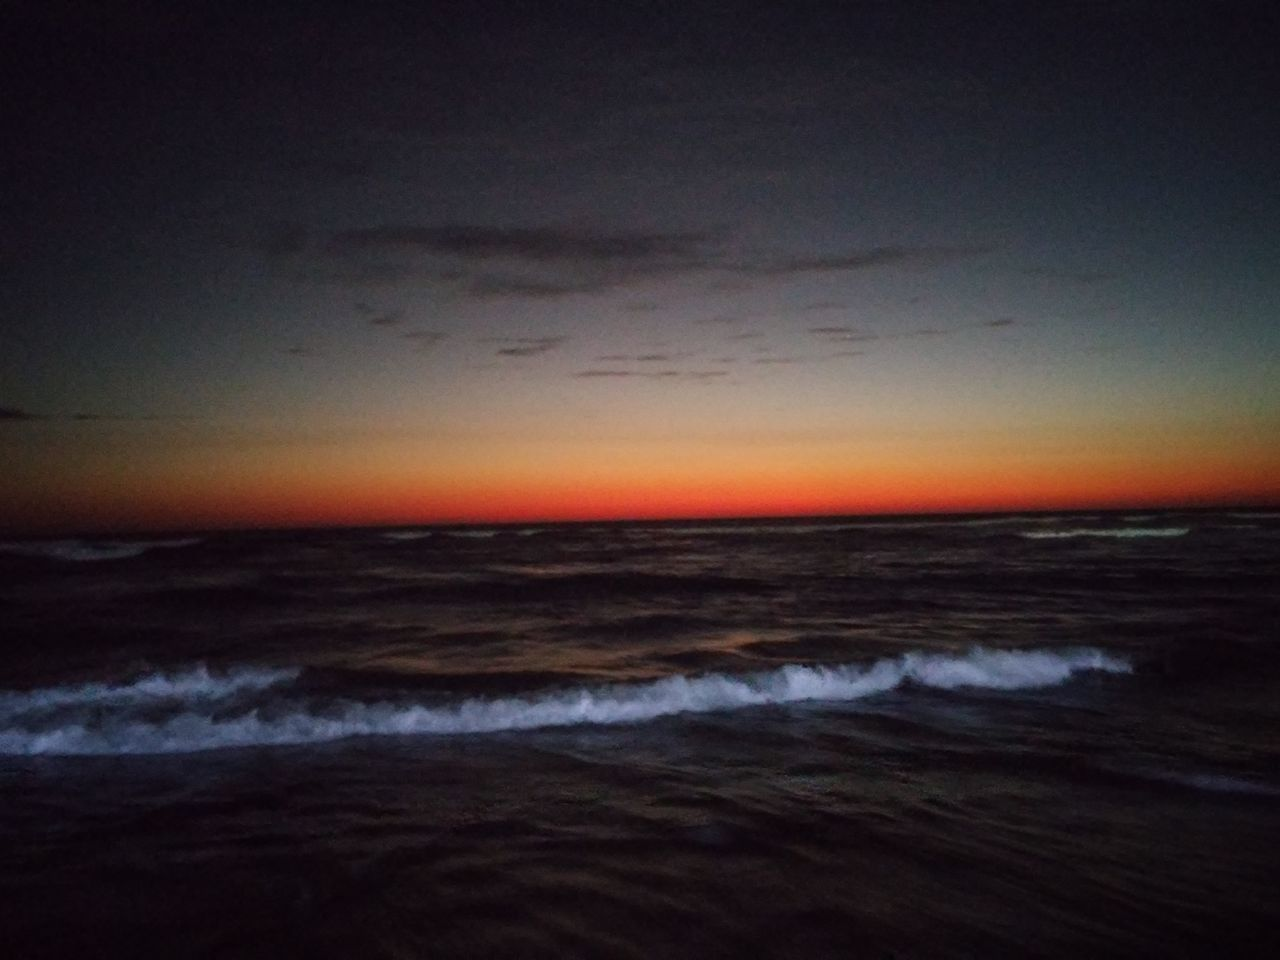 sea, sunset, beauty in nature, horizon over water, nature, sky, scenics, tranquility, cloud - sky, tranquil scene, wave, dramatic sky, beach, dusk, water, no people, outdoors, silhouette, storm cloud, night, power in nature